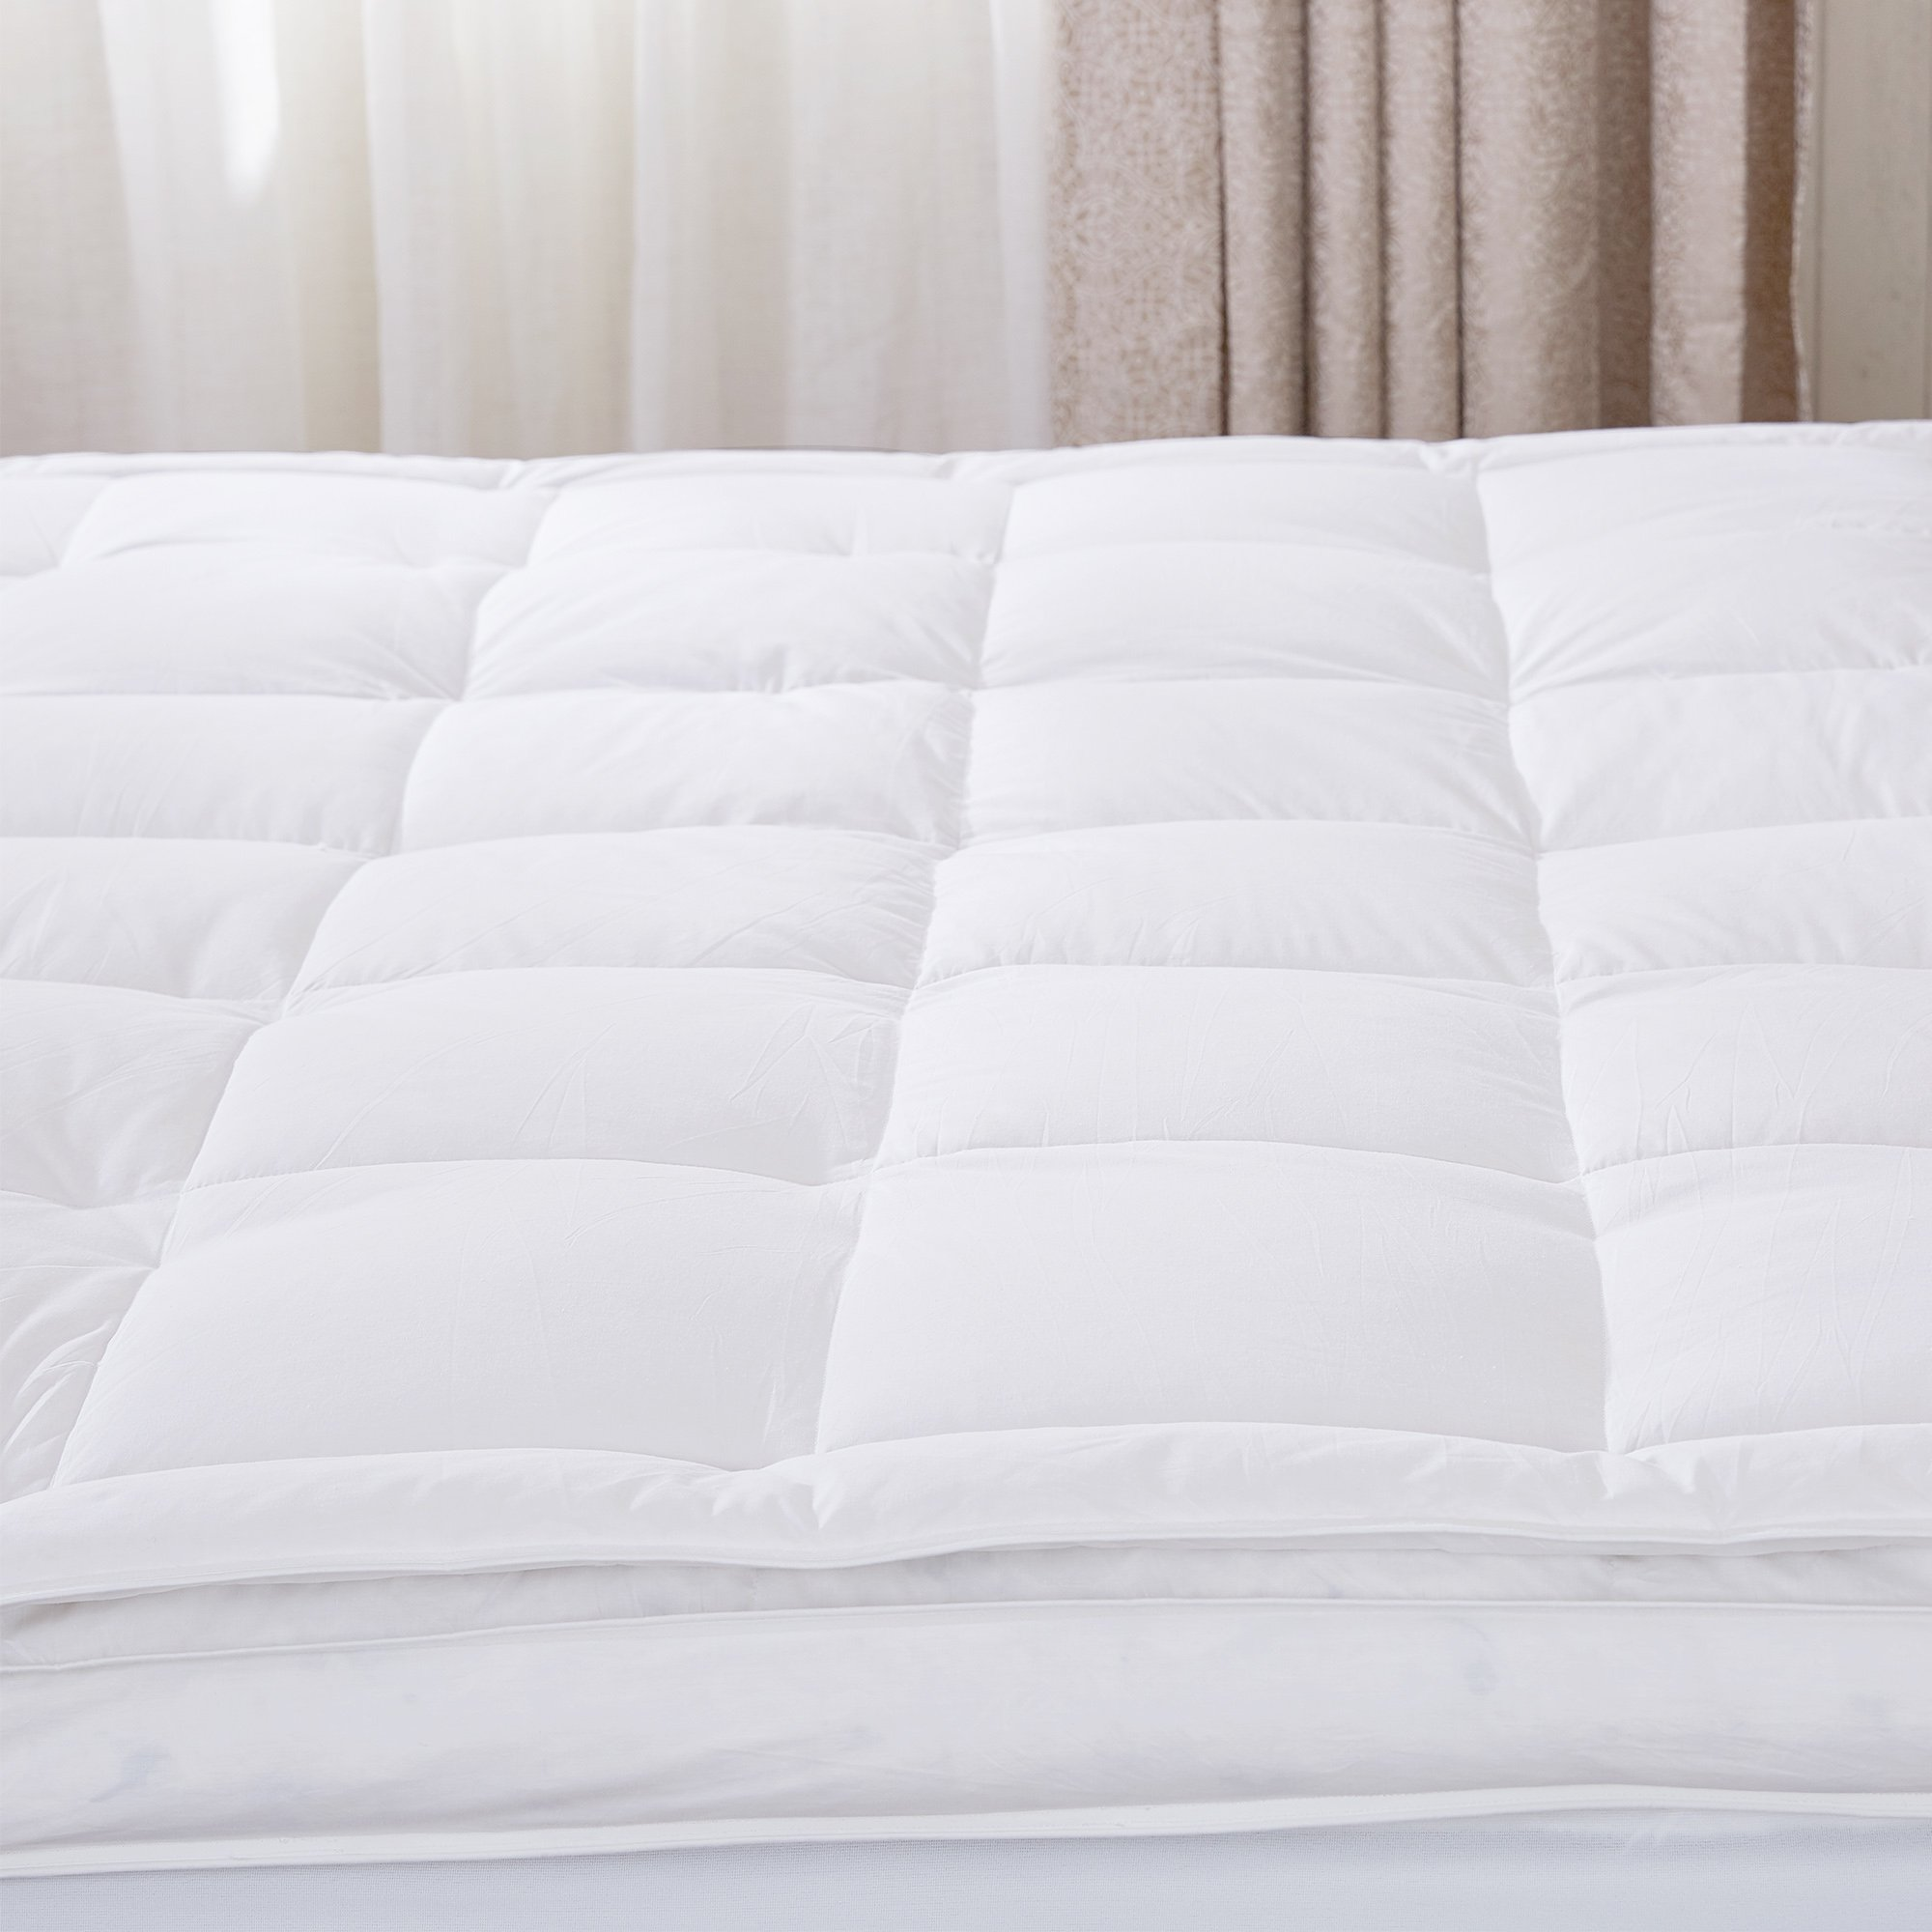 puredown Premium Natural White Goose Down Feather Overfilled Bed Topper 100% Cotton Fabric Mattress Pad Queen Down by puredown (Image #3)